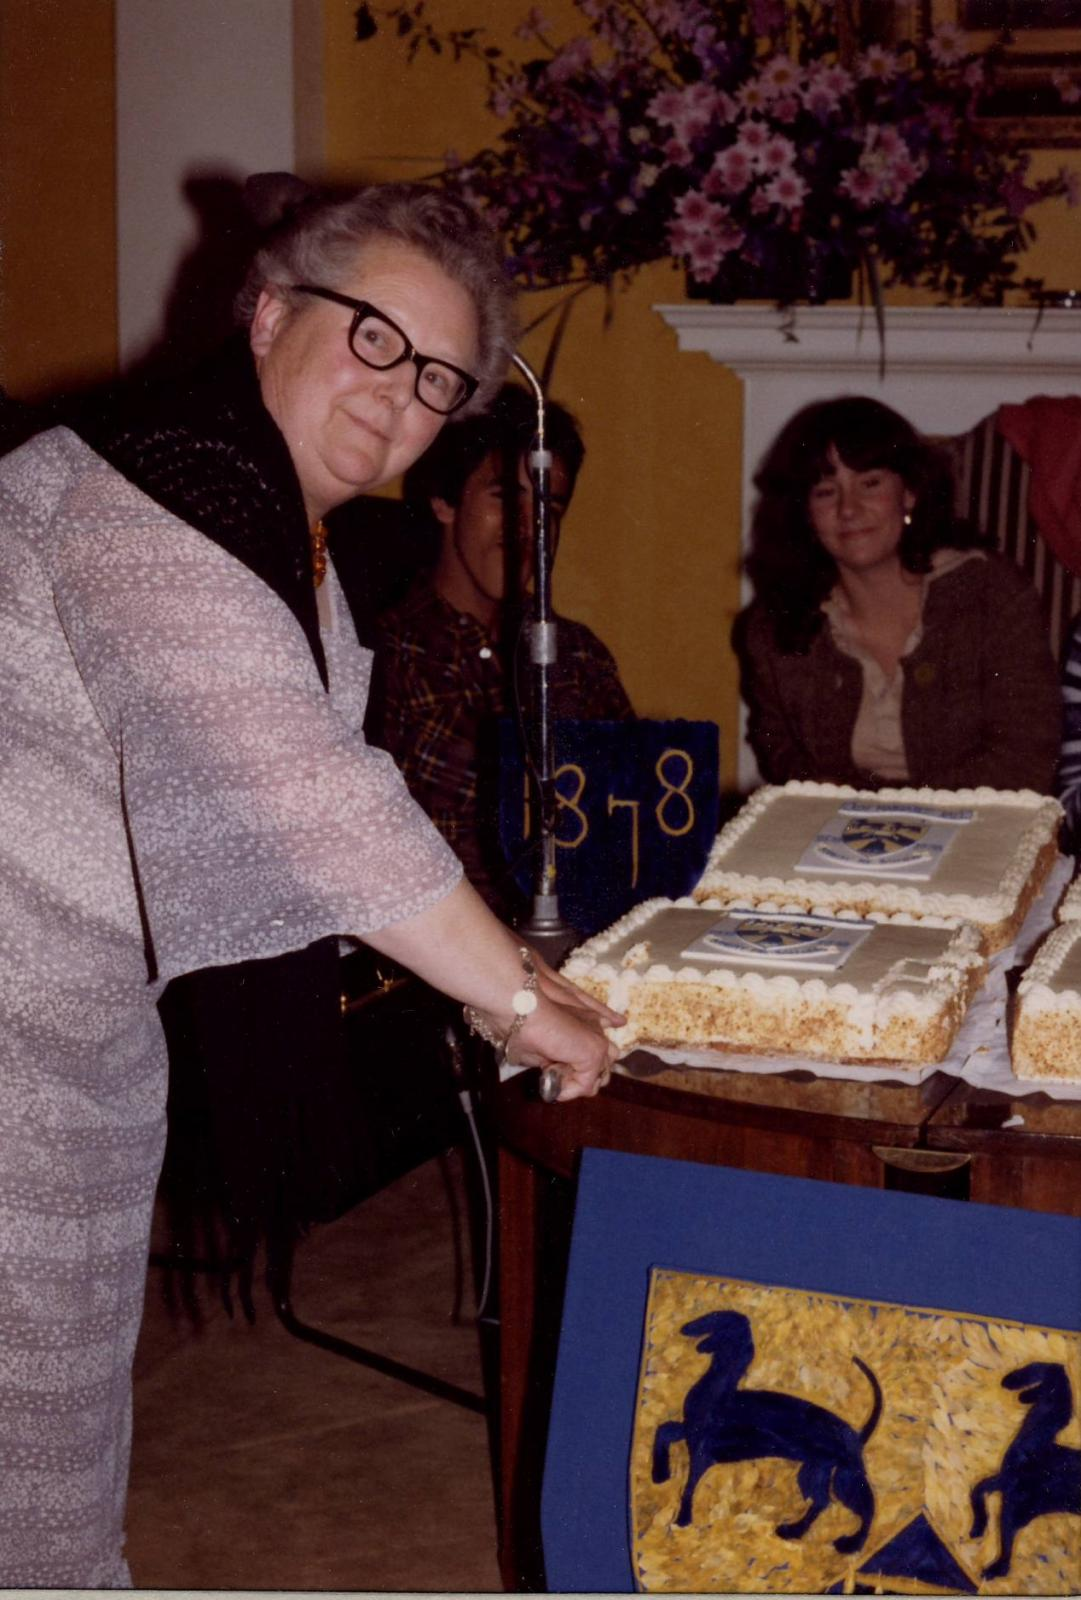 Anne Whiteman opens the LMH centenary cake1978